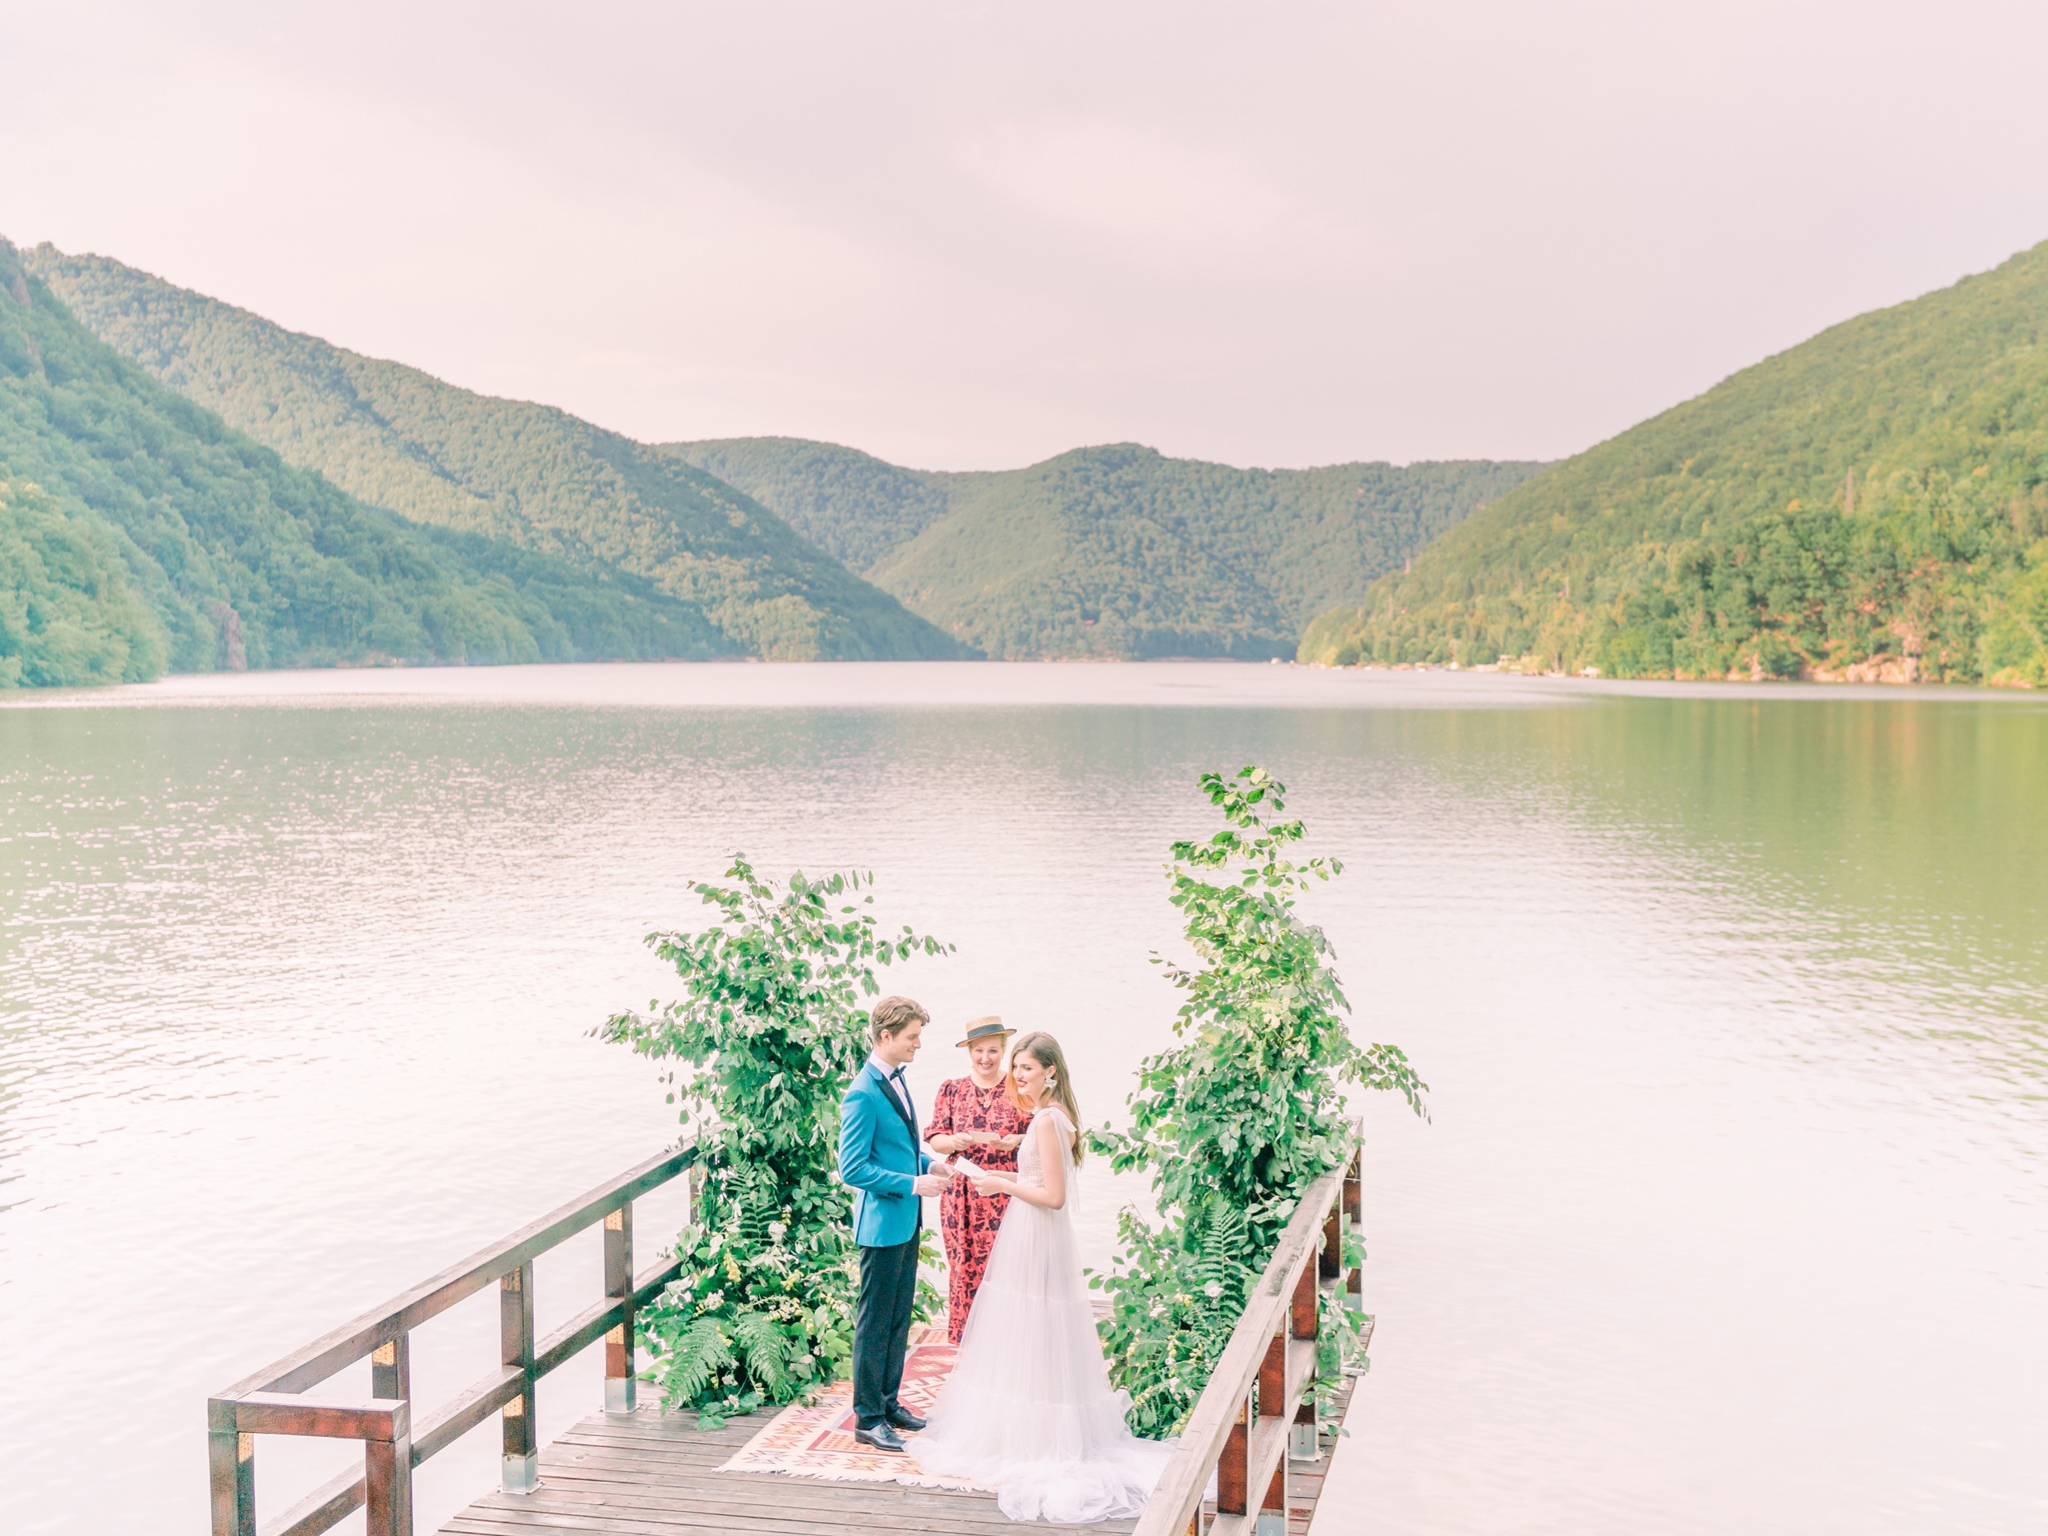 Wedding by the lake in Transylvania